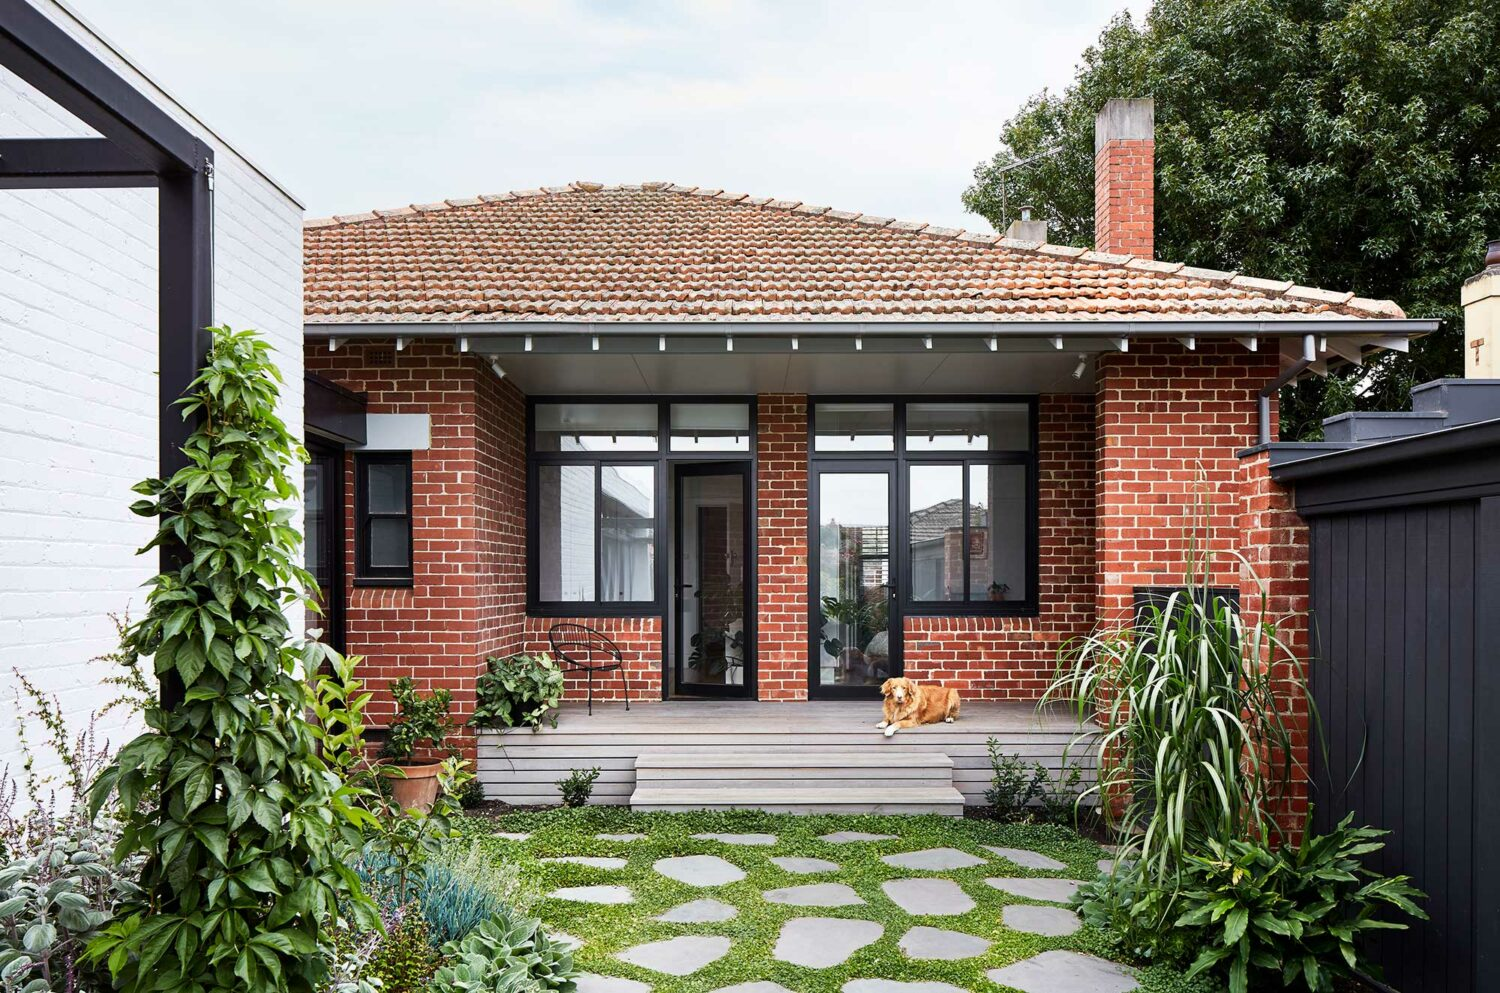 Maike Design renovated Californian Bungalow and extension with beautiful garden